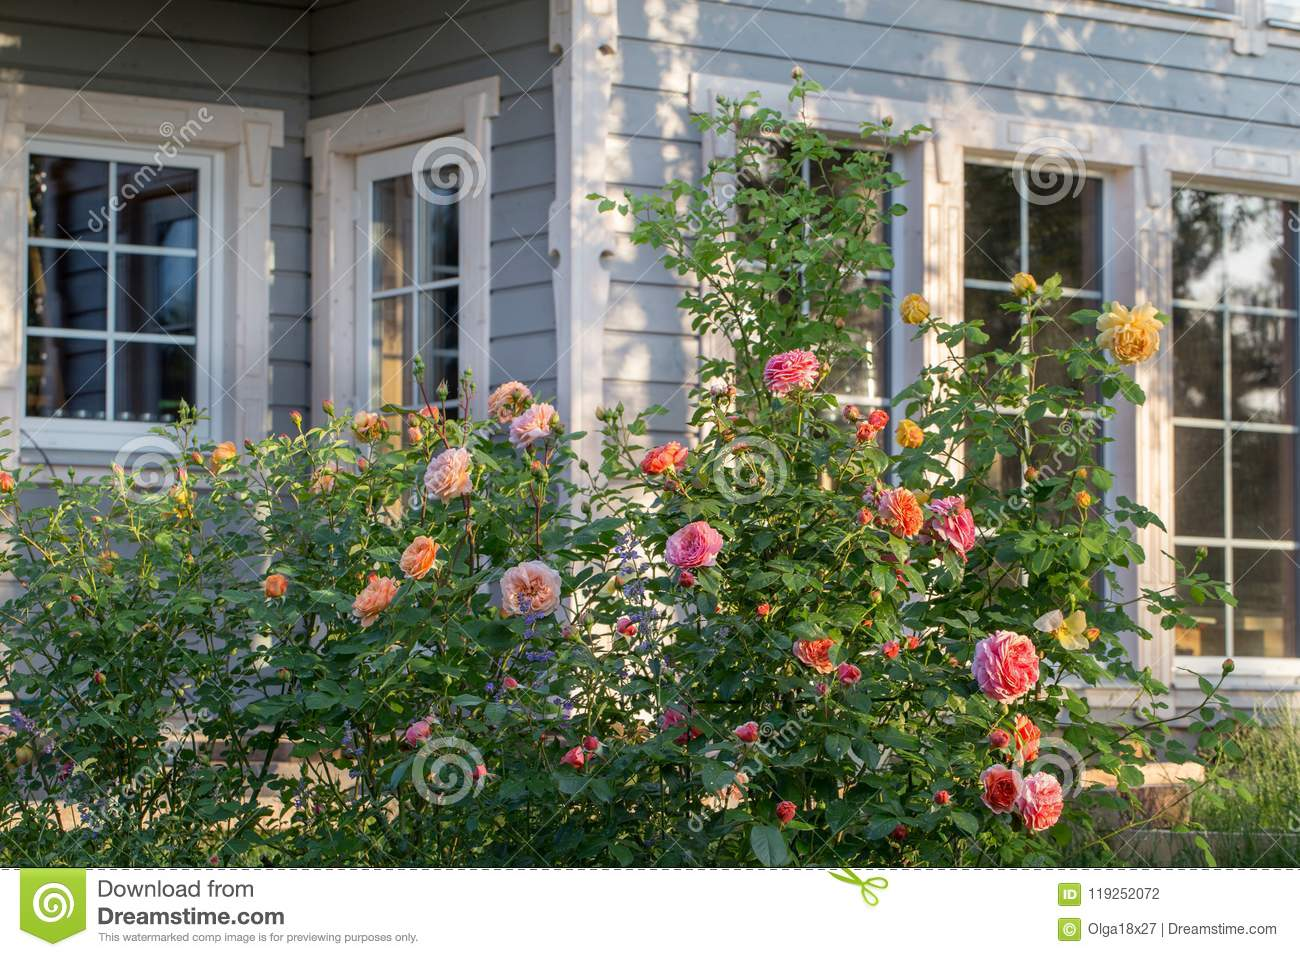 Download Roses And Herb Garden Outside A Country House Stock Photo   Image  Of English,